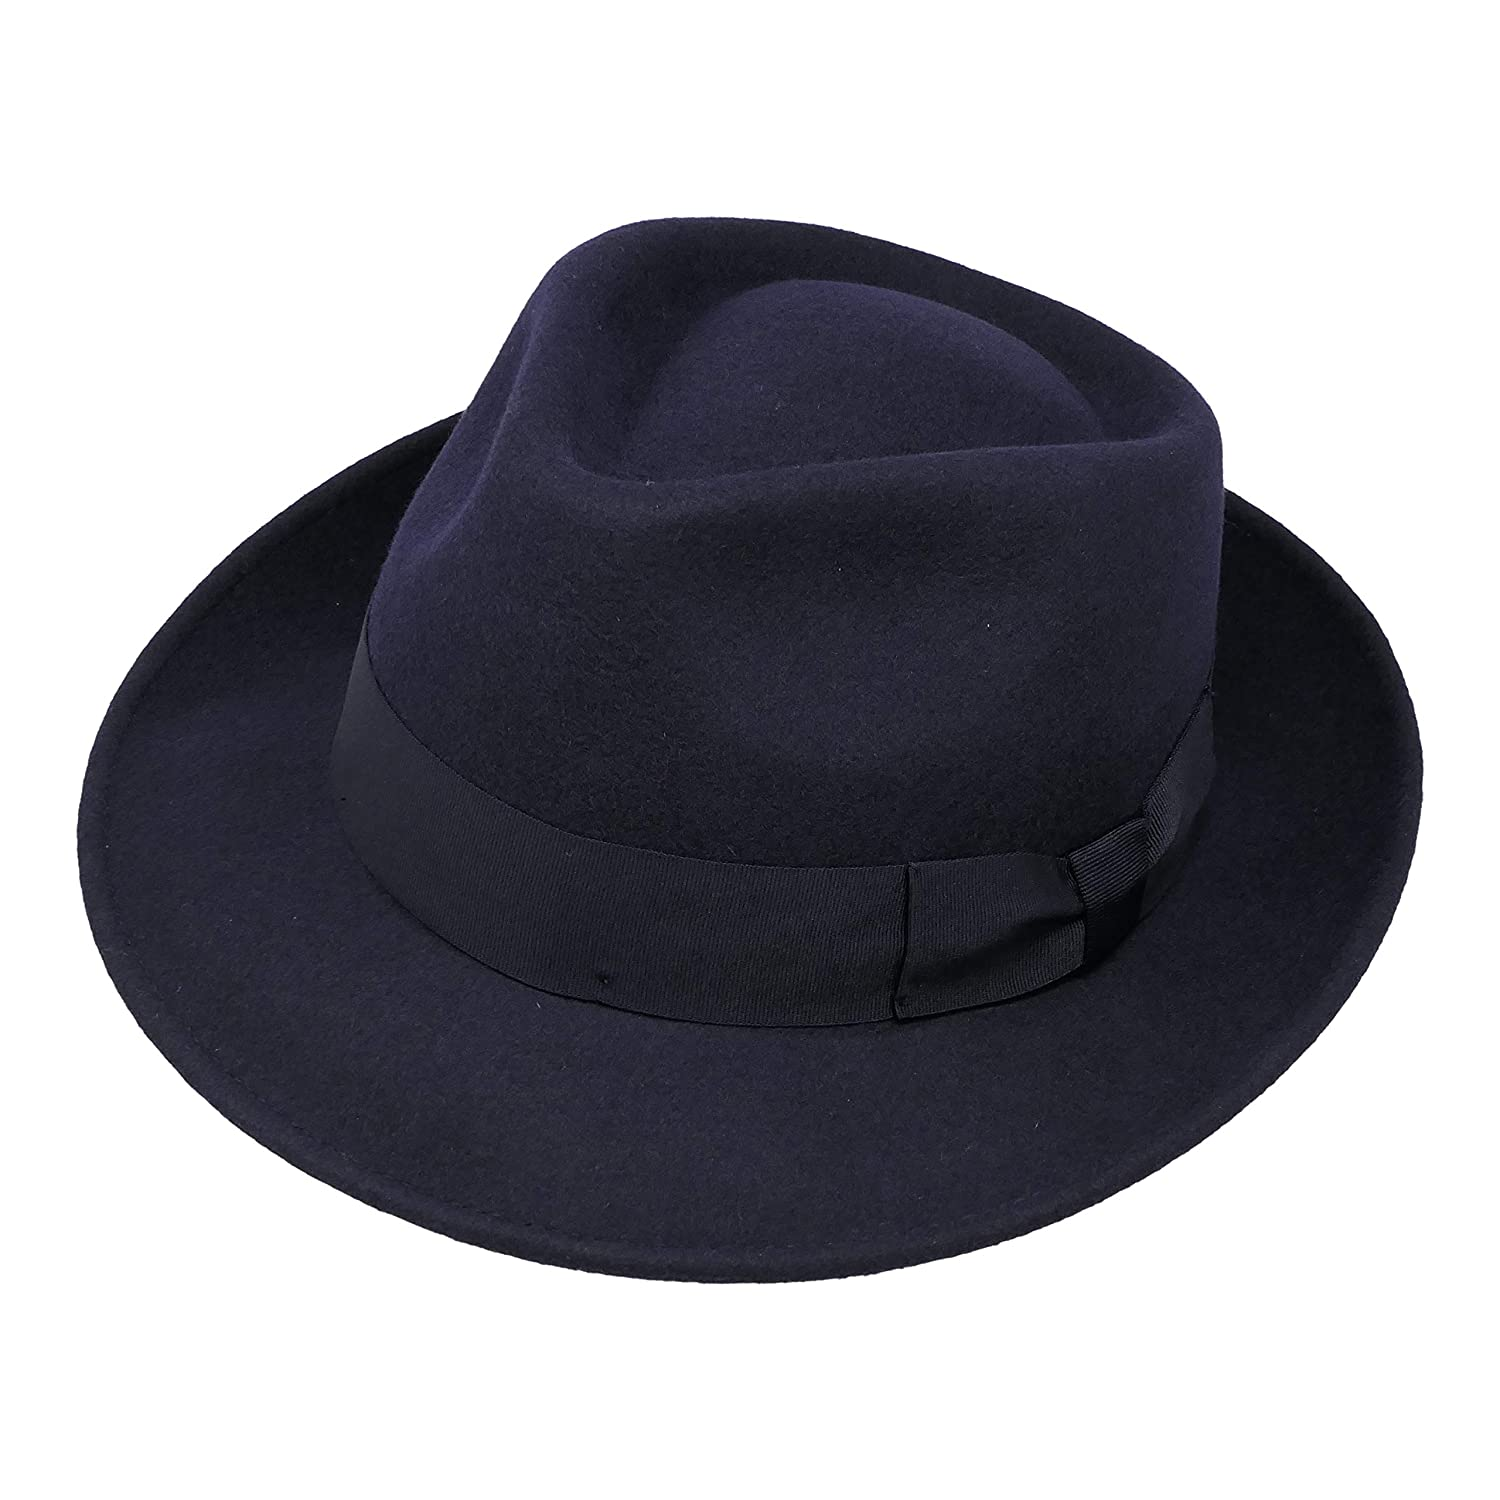 Teardrop Fedora Hat 100/% Alpaca Wool Felt Premium Doyle Water Resistant Crushable for Travel Unisex